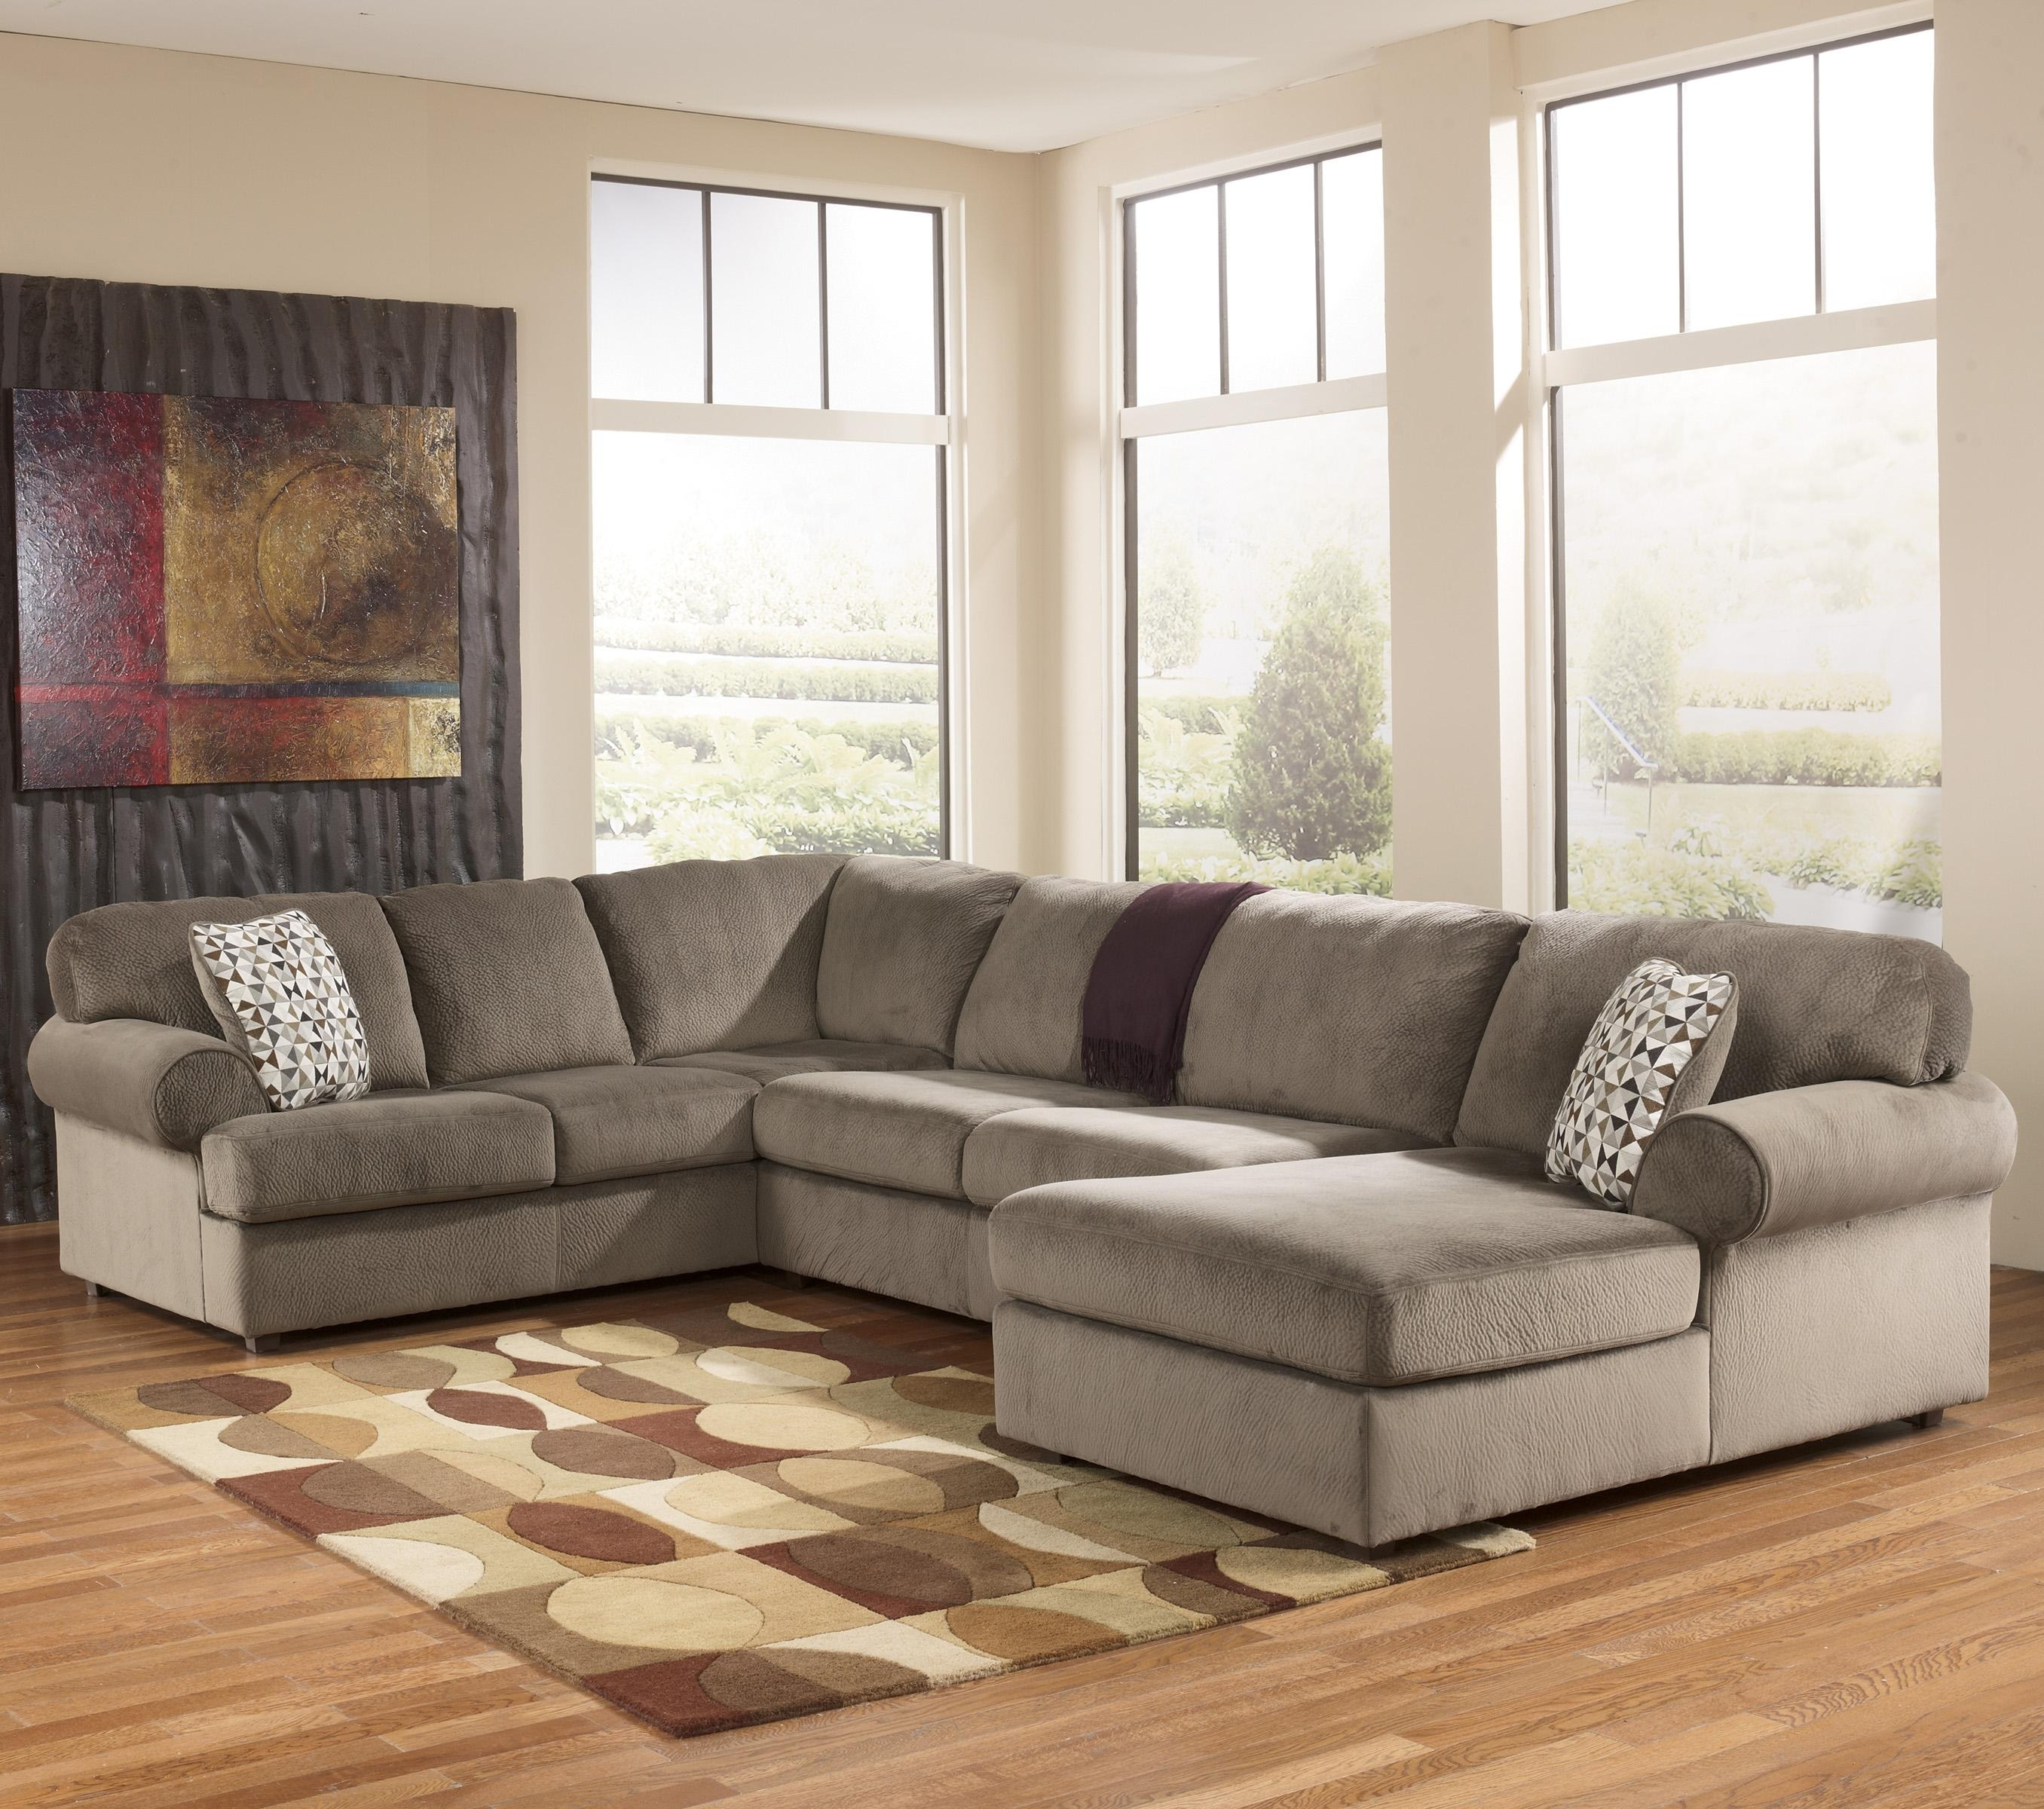 Signature Designashley Jessa Place – Dune Casual Sectional Sofa Inside Norfolk Chocolate 3 Piece Sectionals With Raf Chaise (Image 28 of 33)